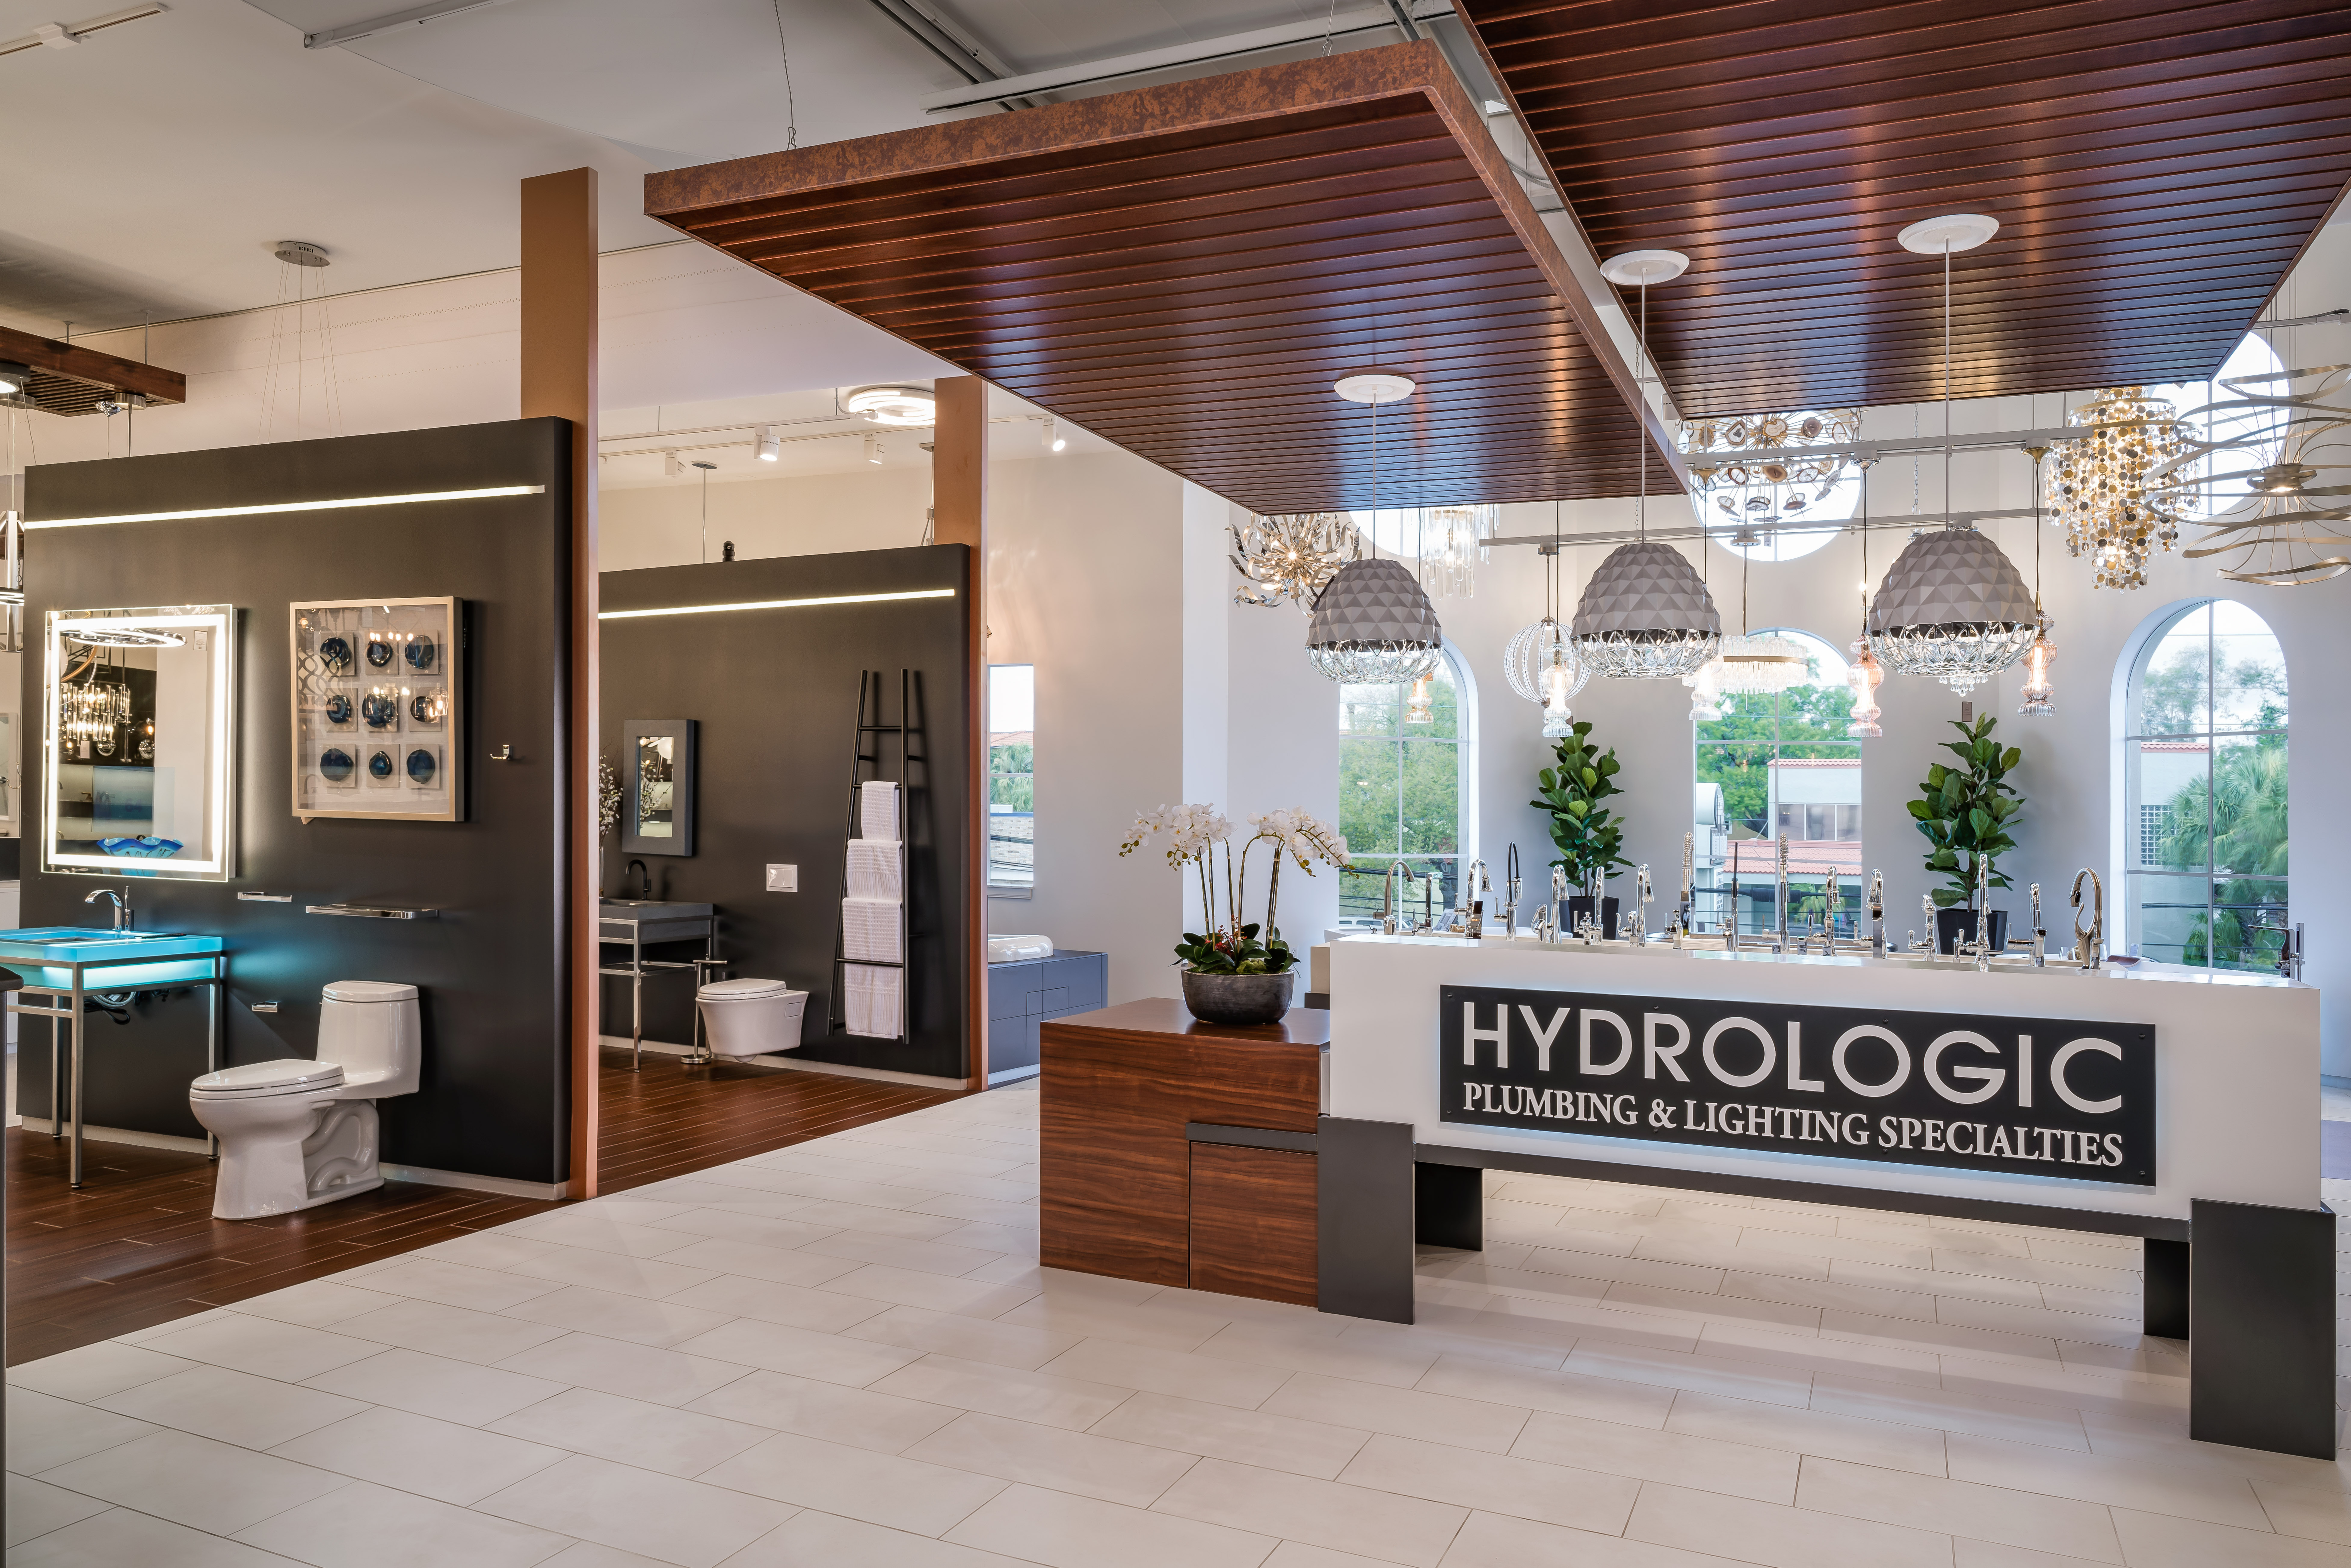 Klar and klar architects design new hydrologic plumbing and lighting showroom in tampa fl